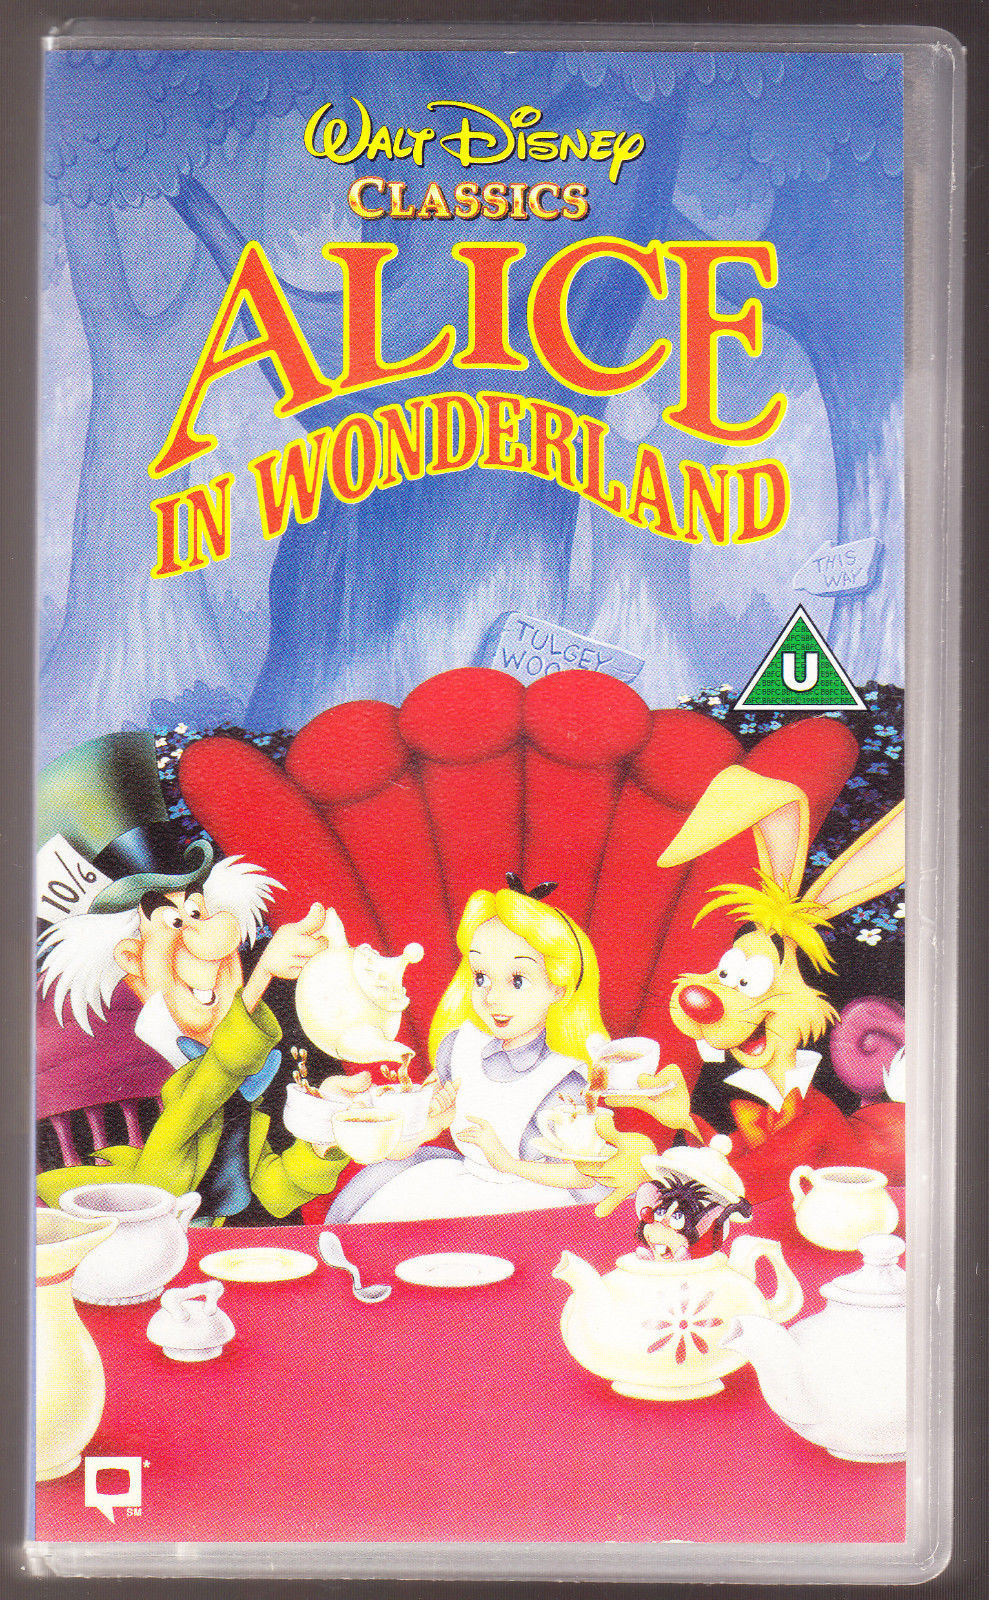 c2eef2bfc Alice in Wonderland (UK VHS 1994)